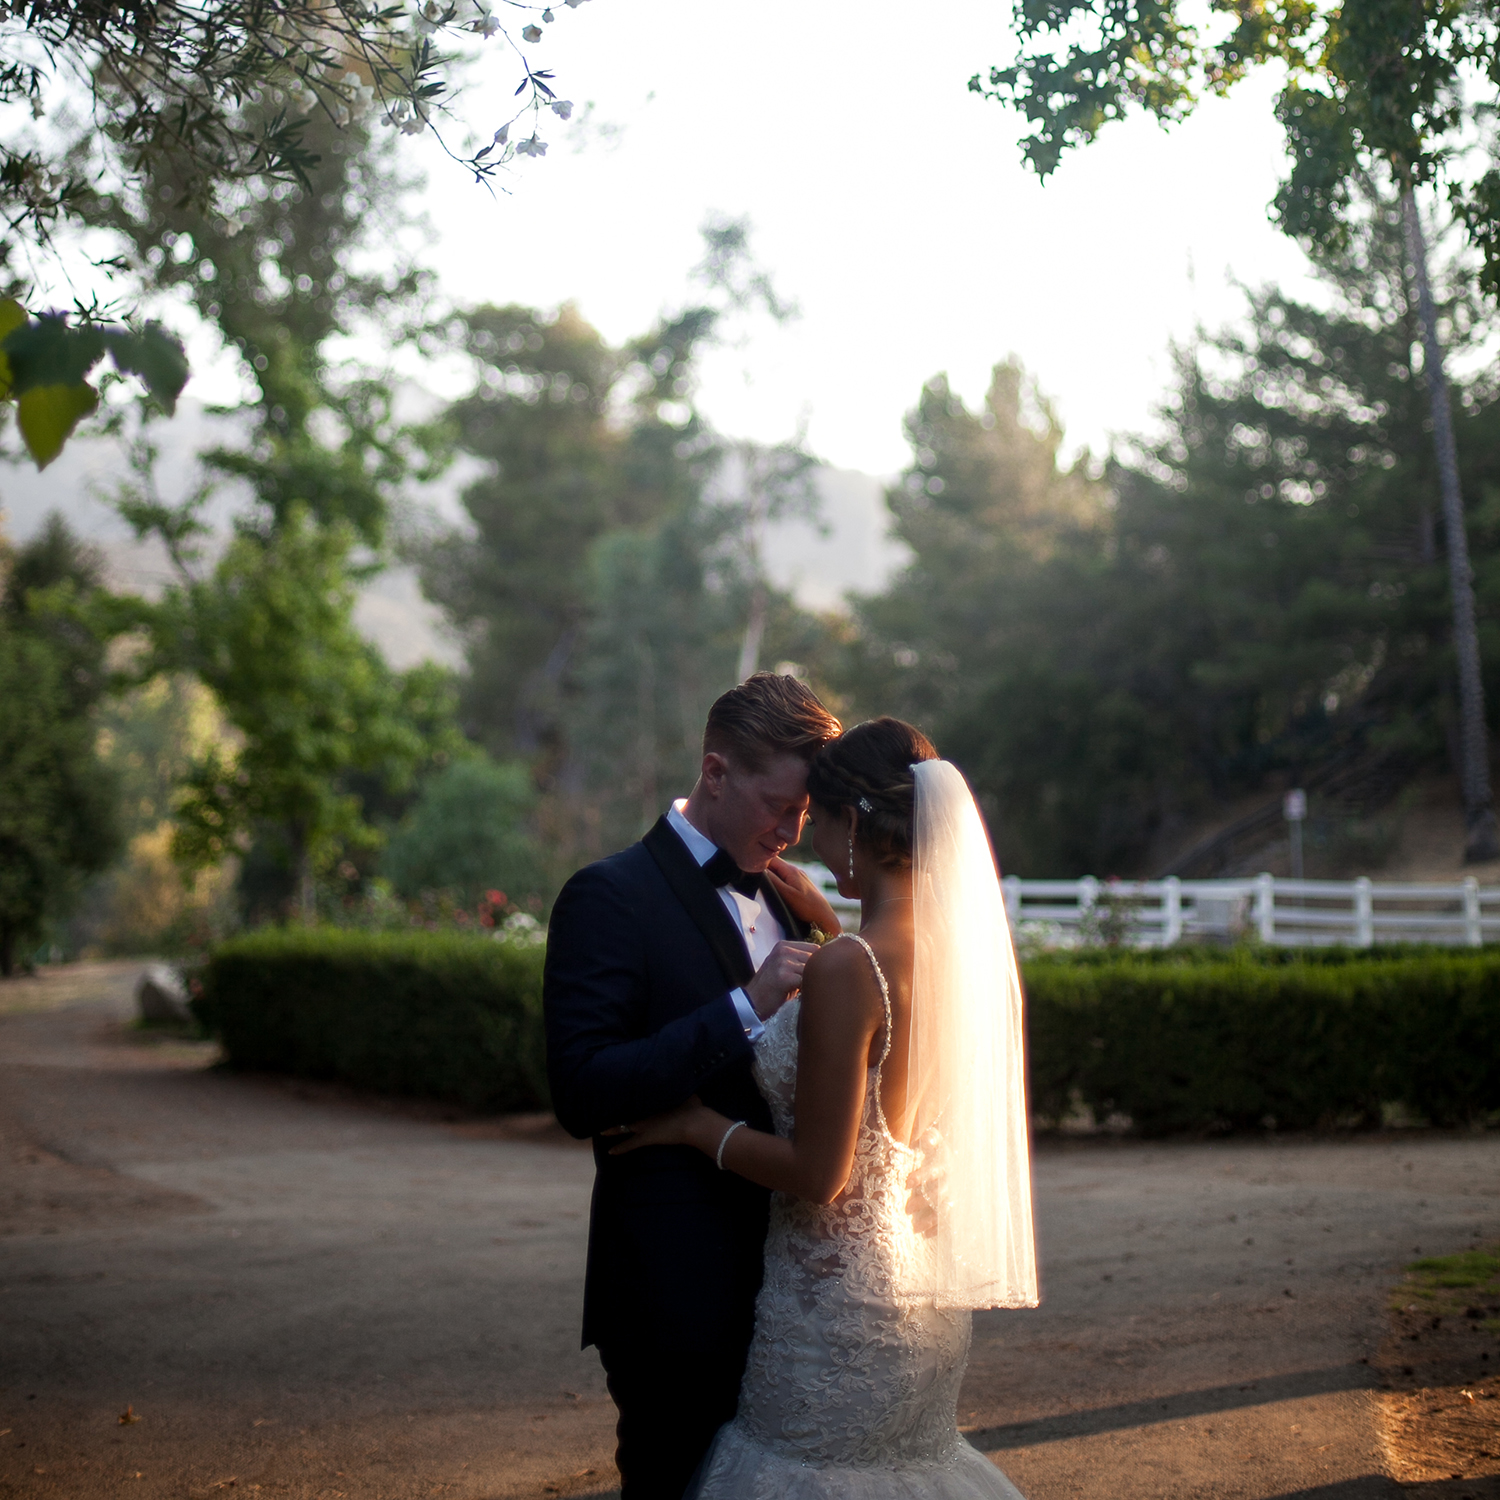 Bride and Groom, Lawn in BG SQ.jpg